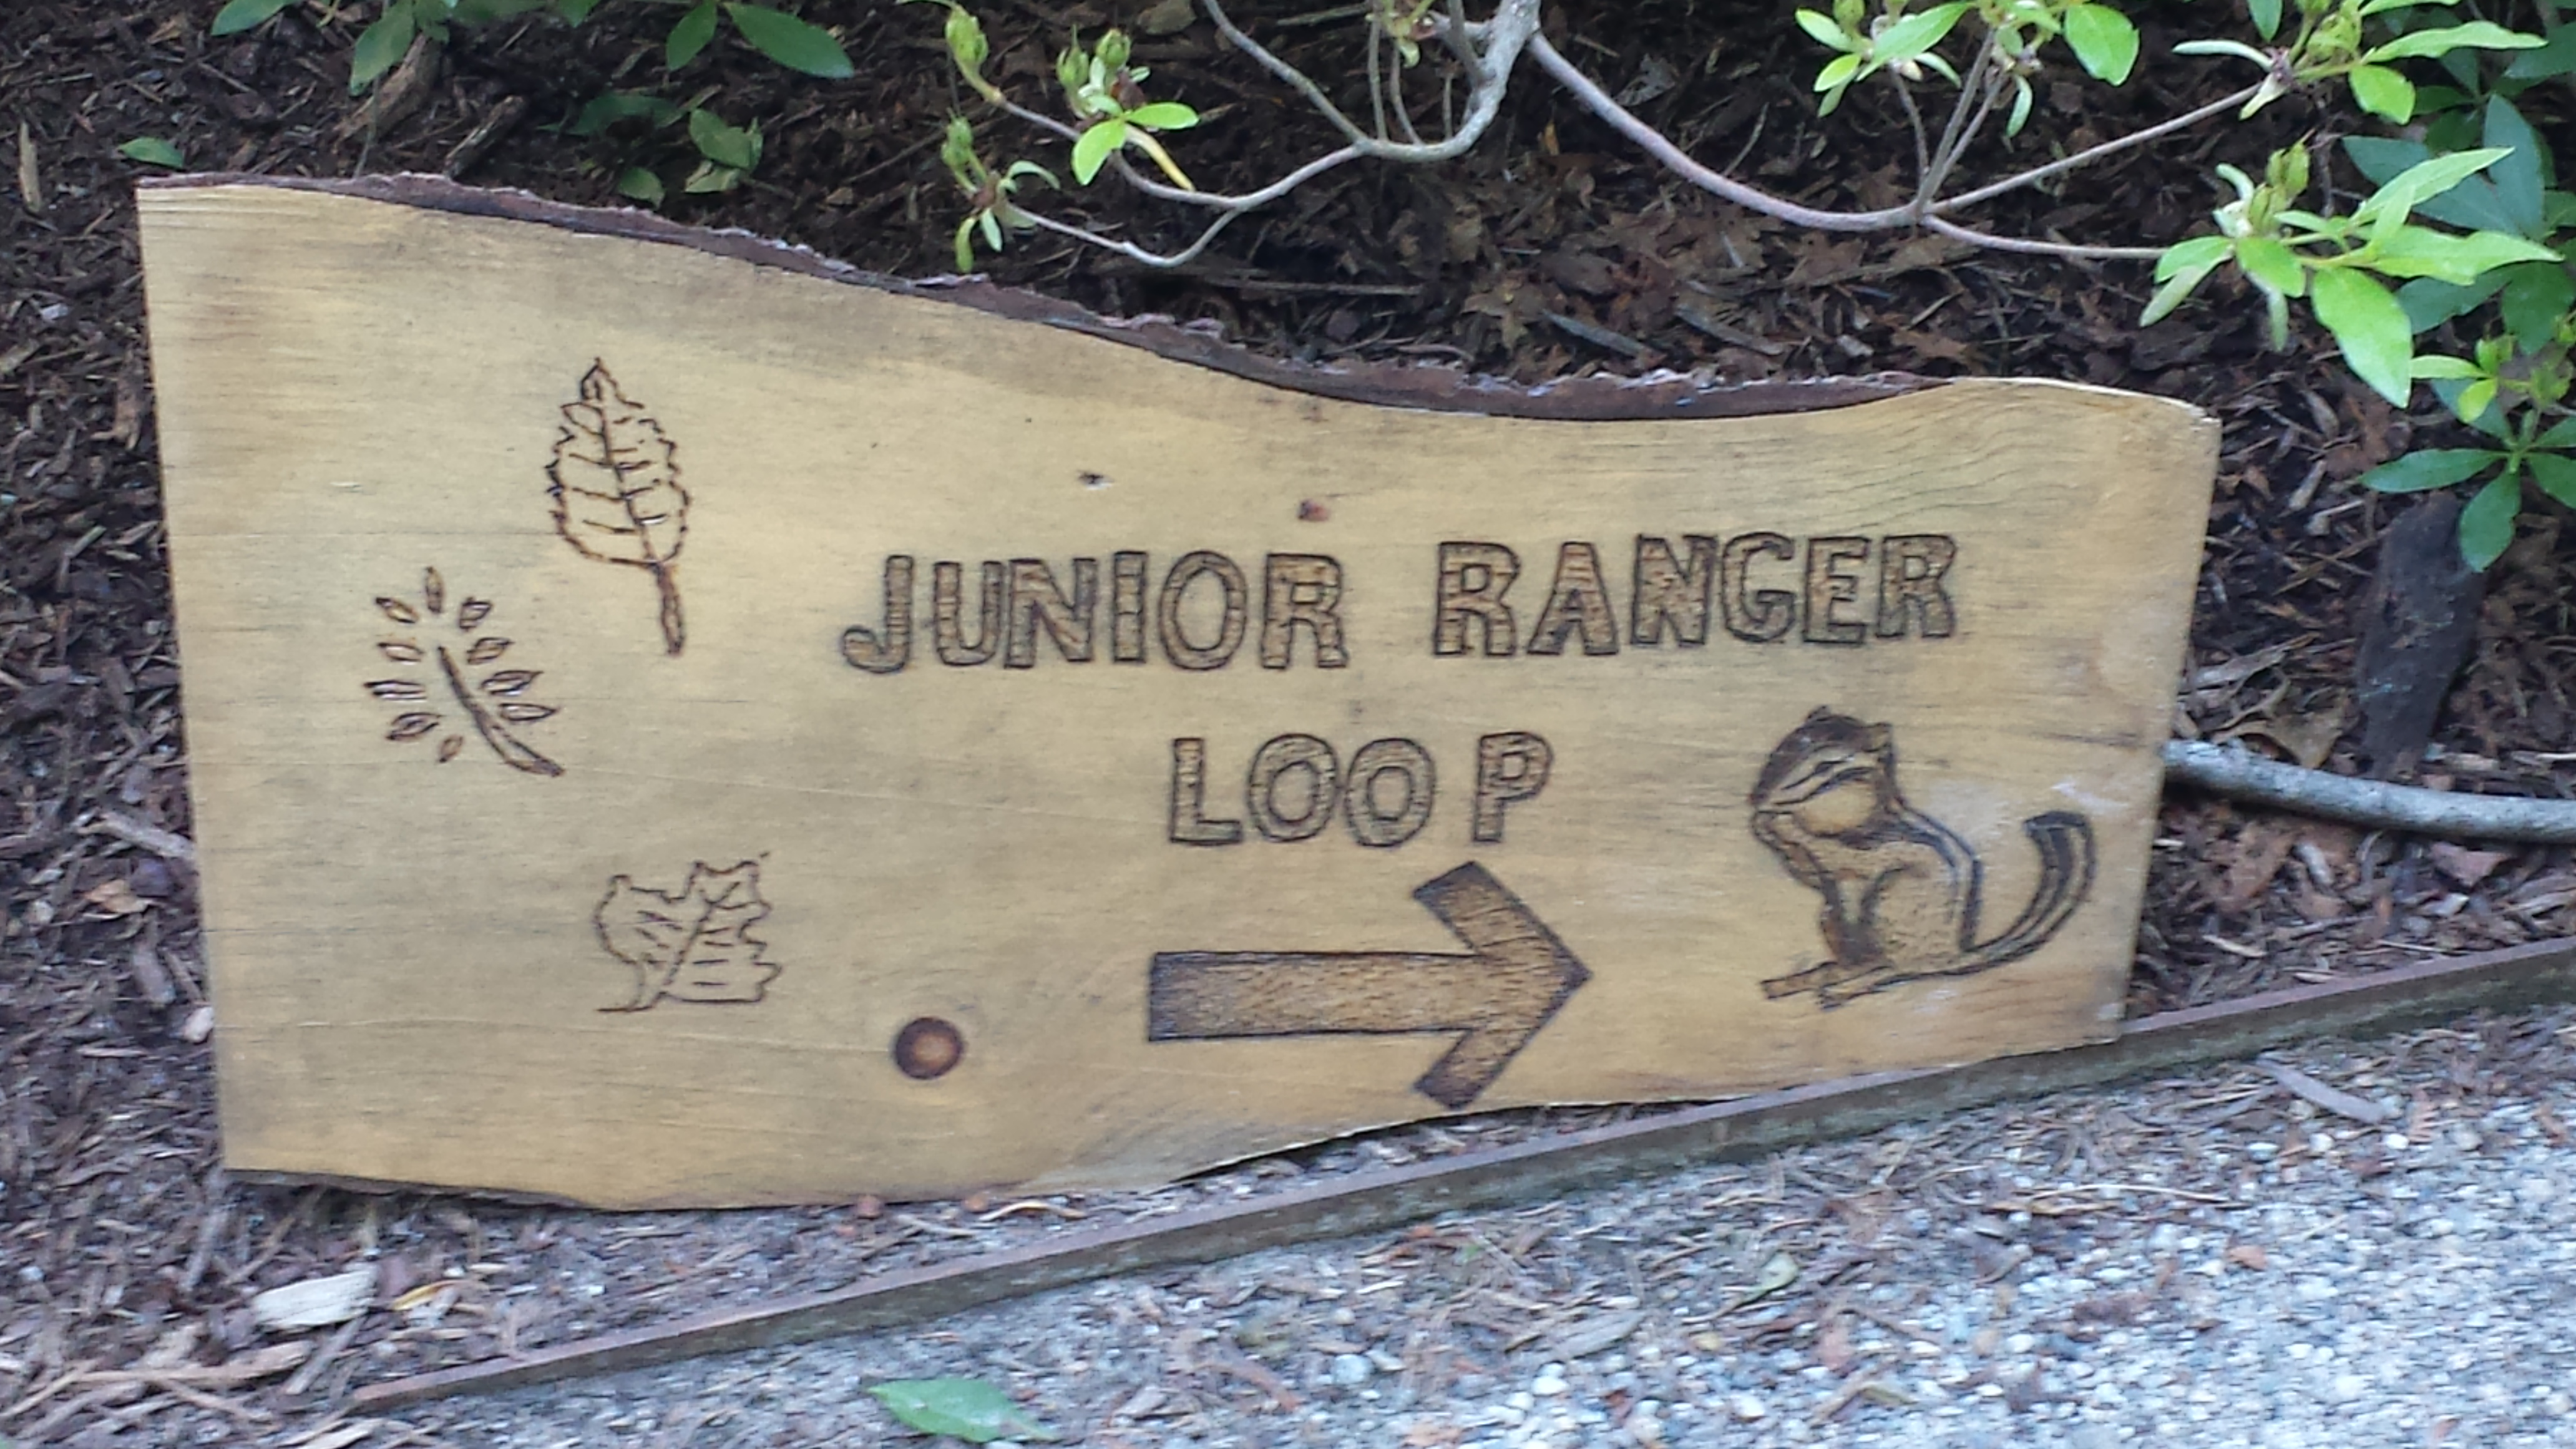 A wooden sign with Junior Ranger Loop written on it